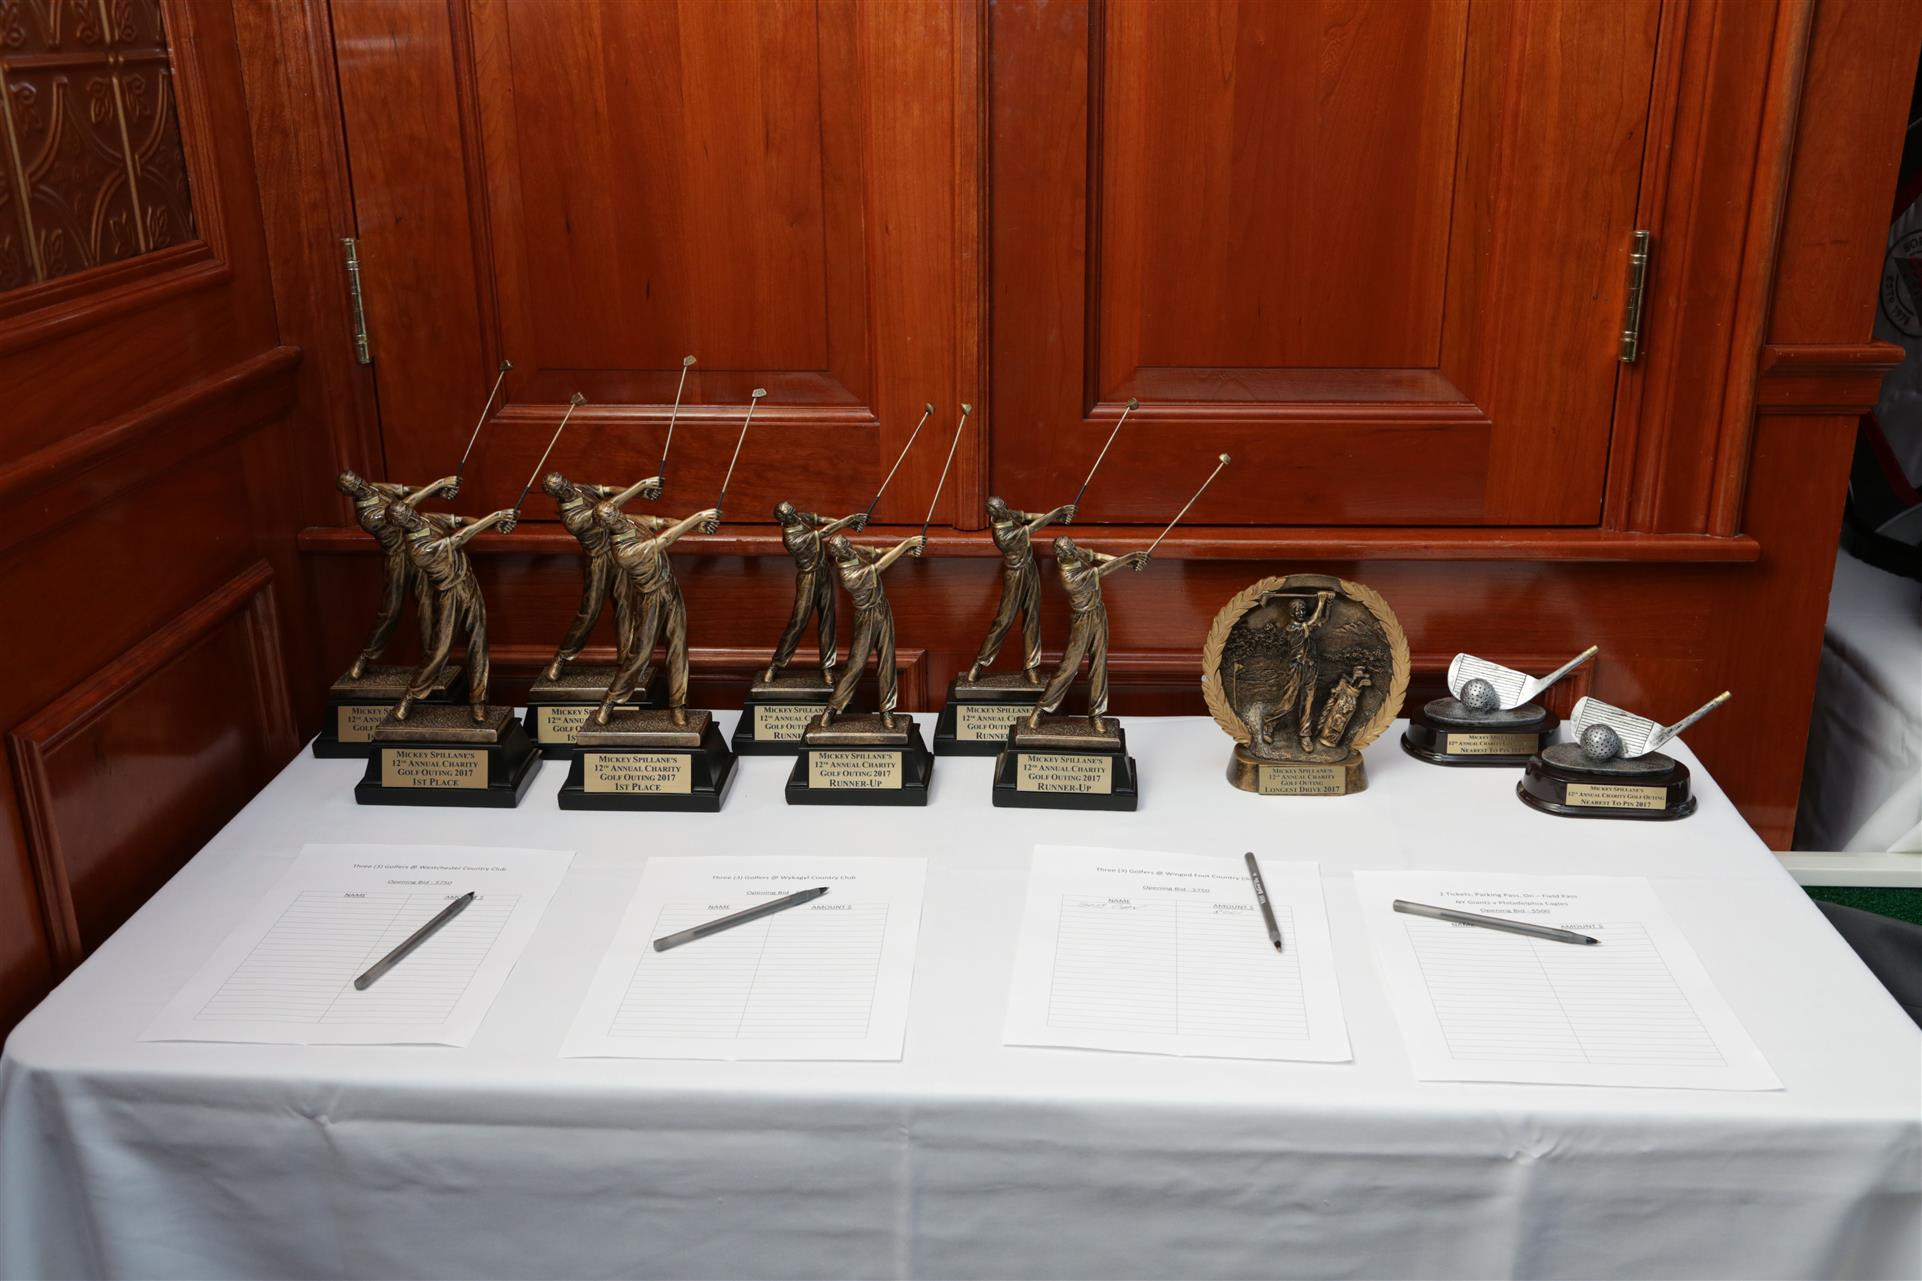 a variety of trophies